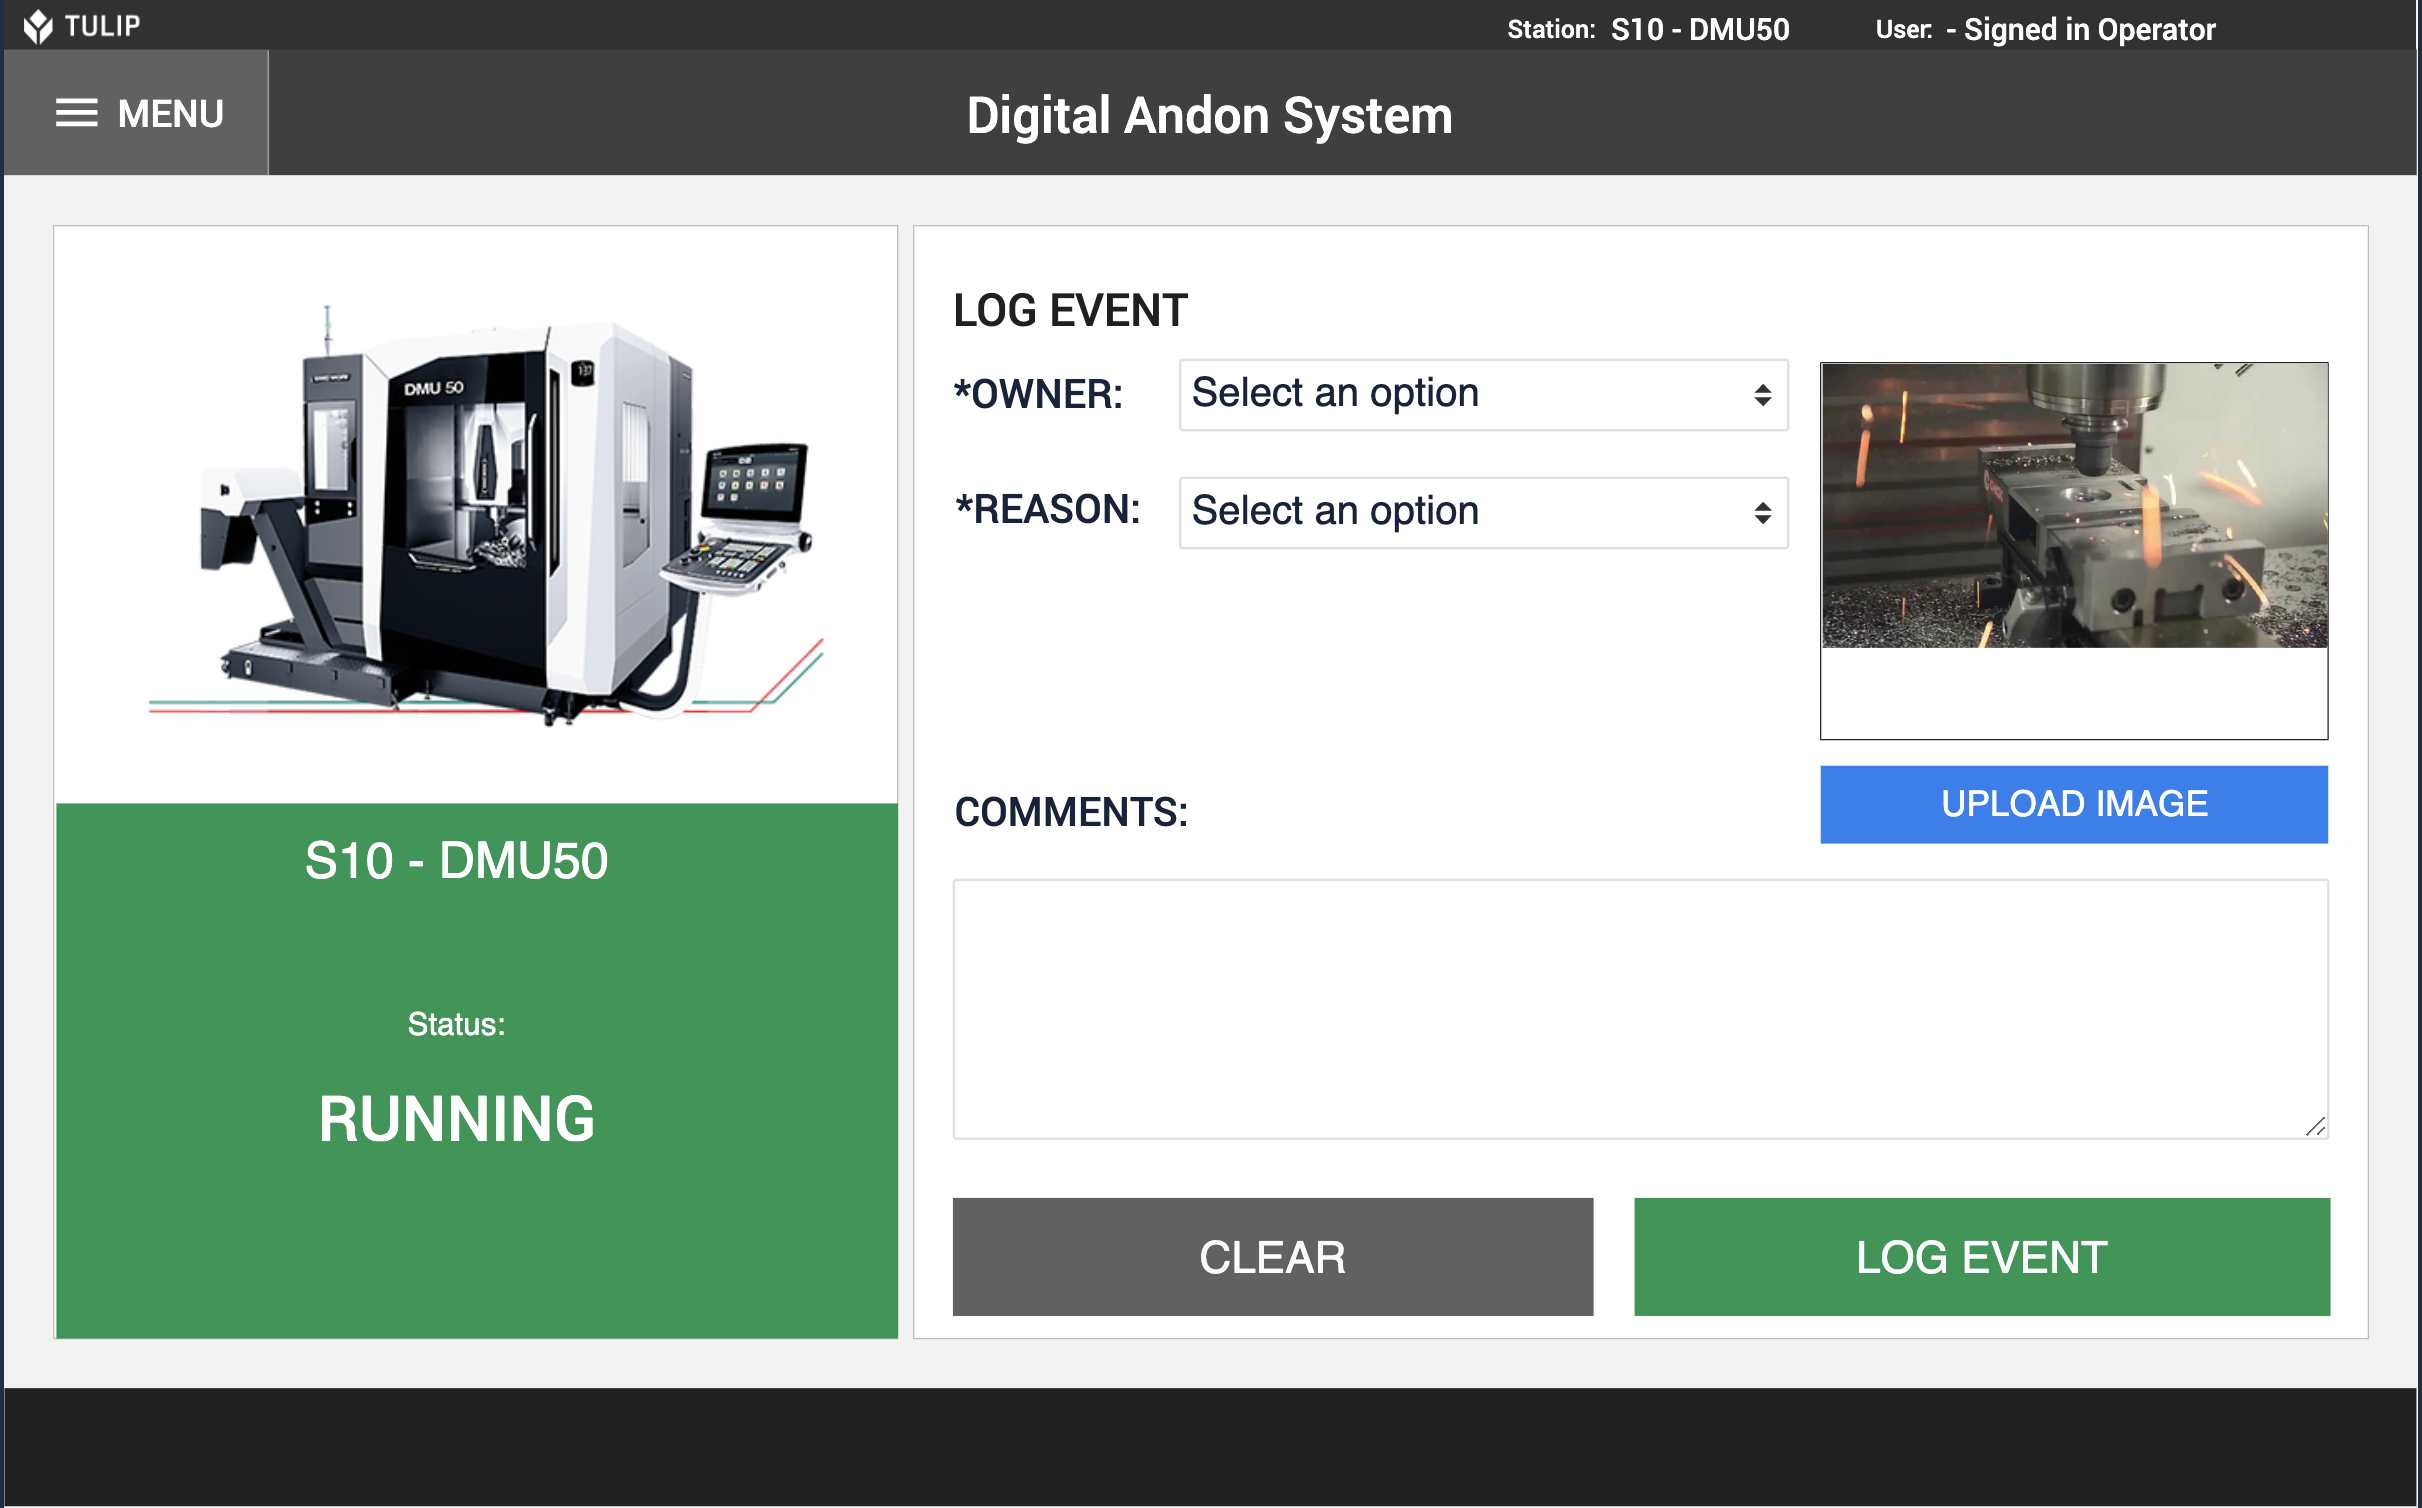 Image of Digital Andon System app